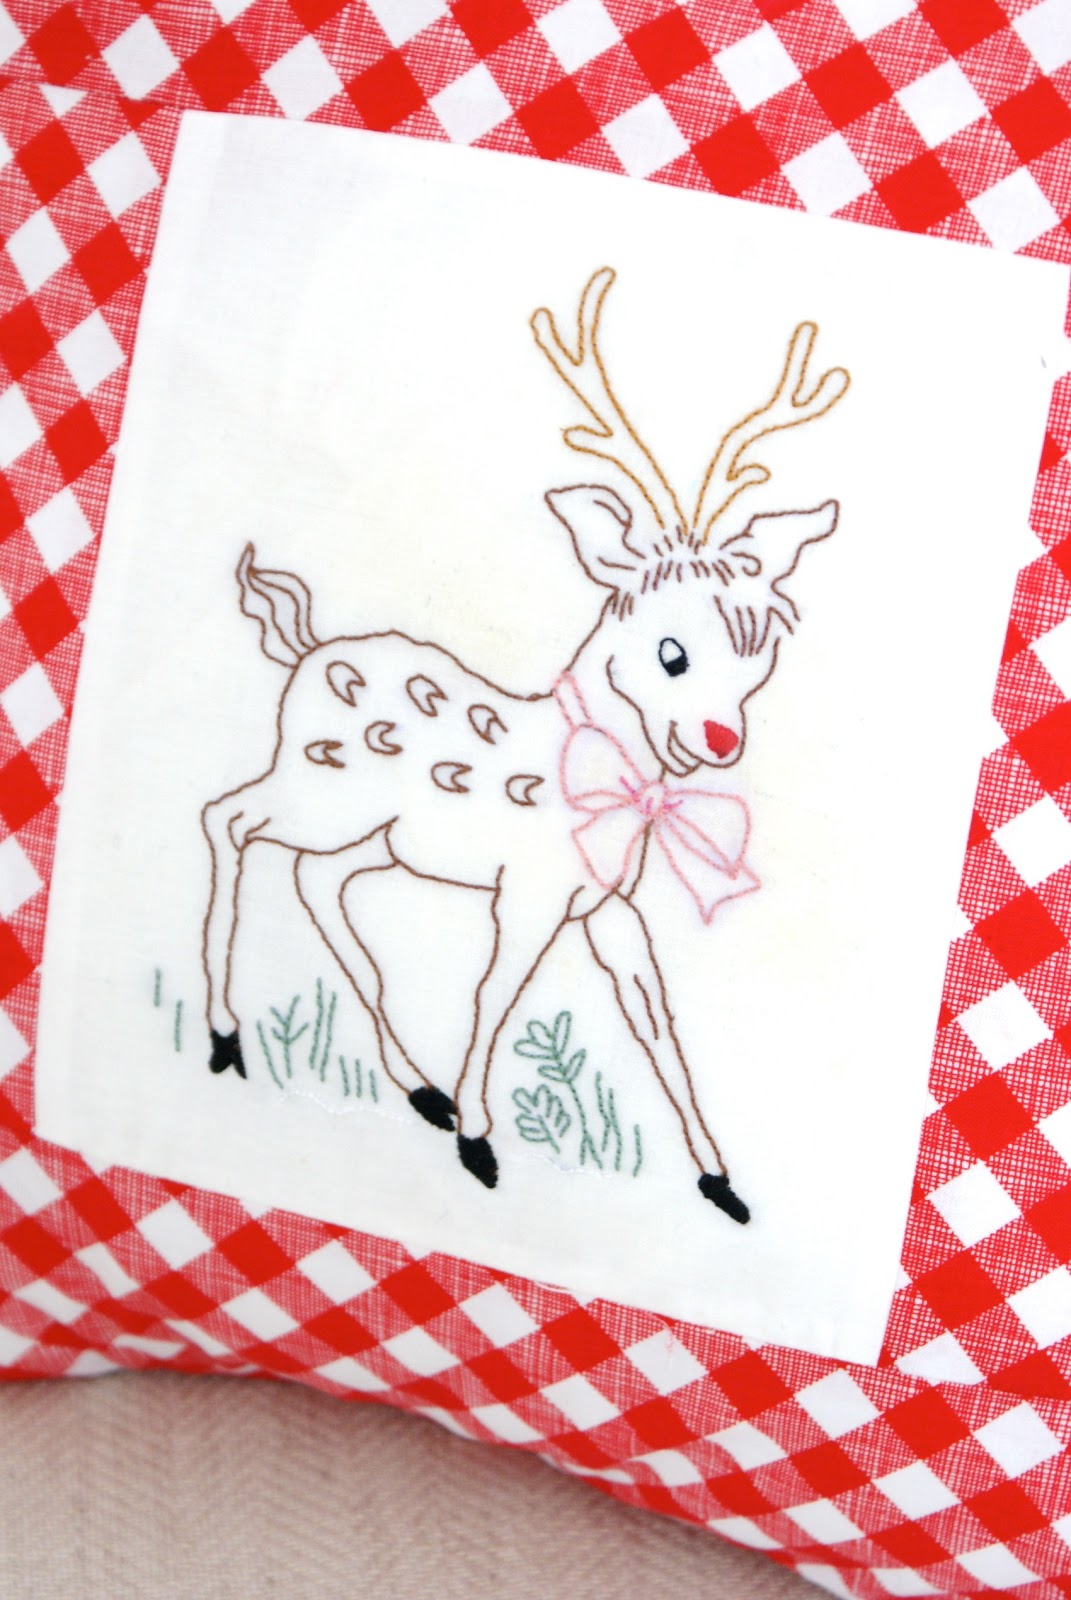 Embroidery Christmas Patterns Messyjesse A Quilt Blog Jessie Fincham Christmas Reindeer